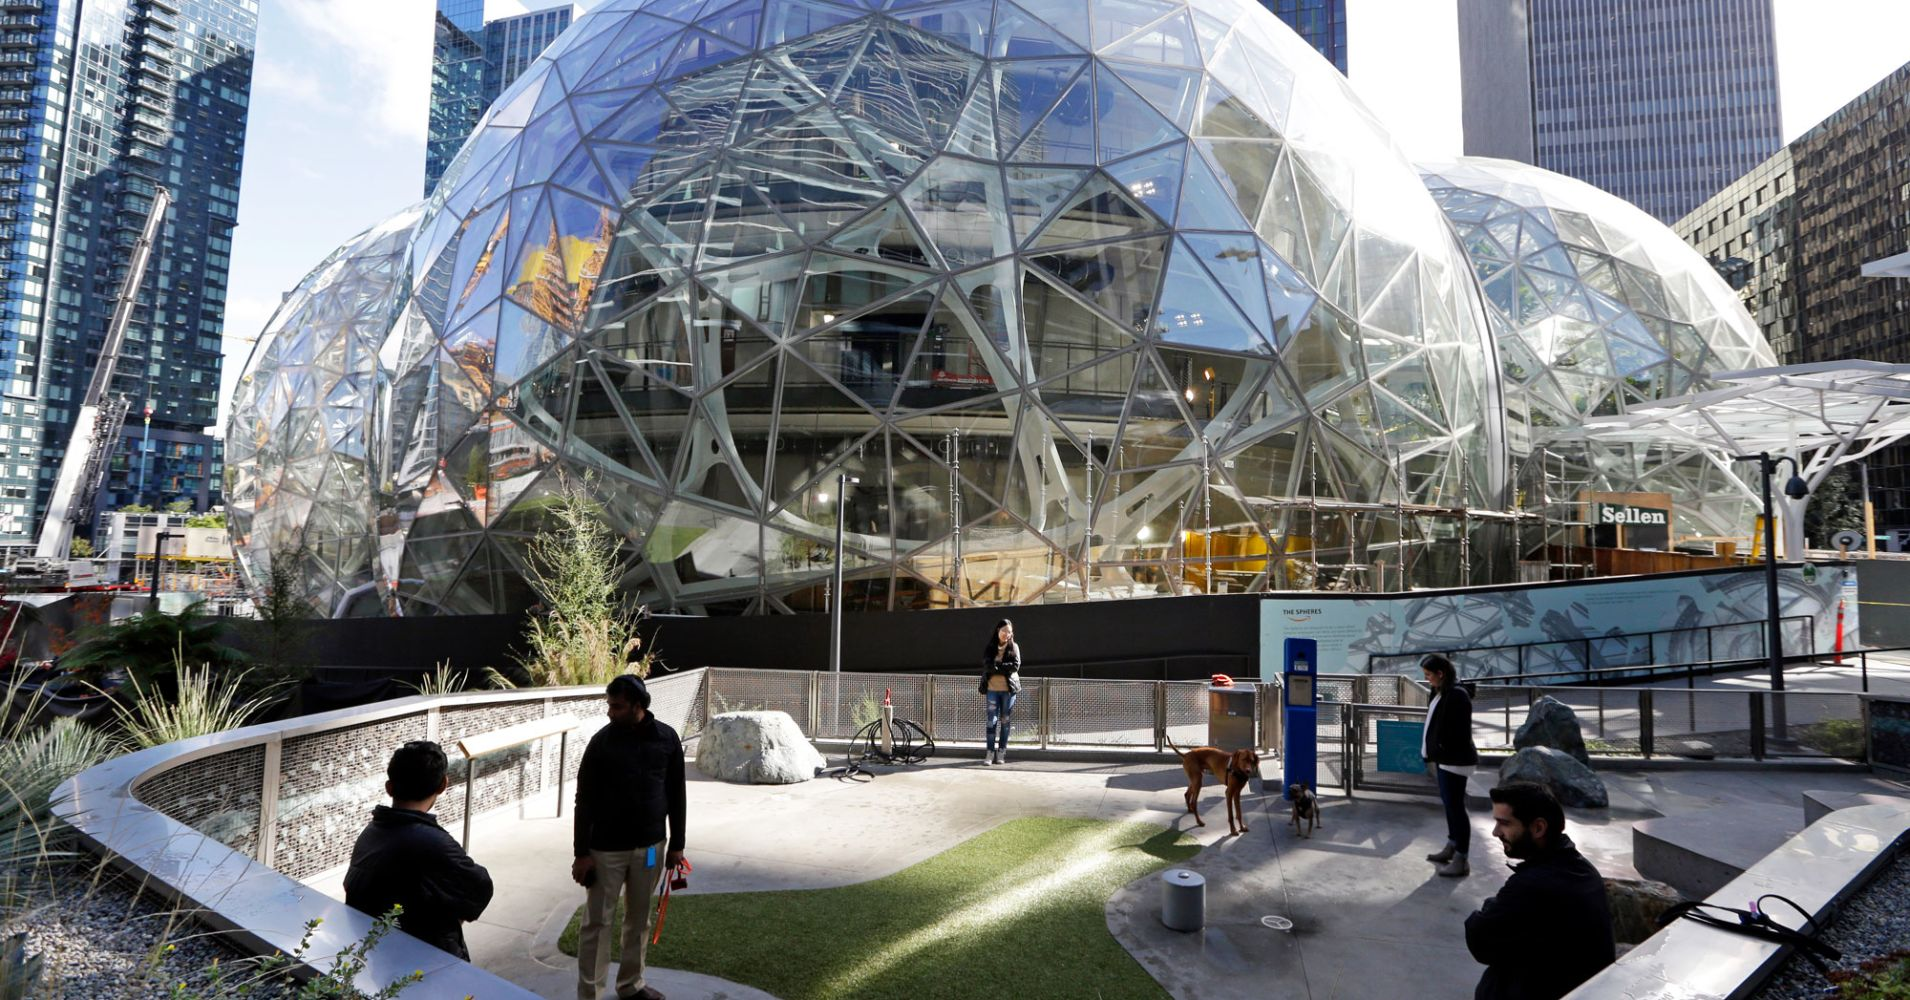 Amazon's HQ2 NYC: Amazon reconsiders headquarters after local opposition, report says